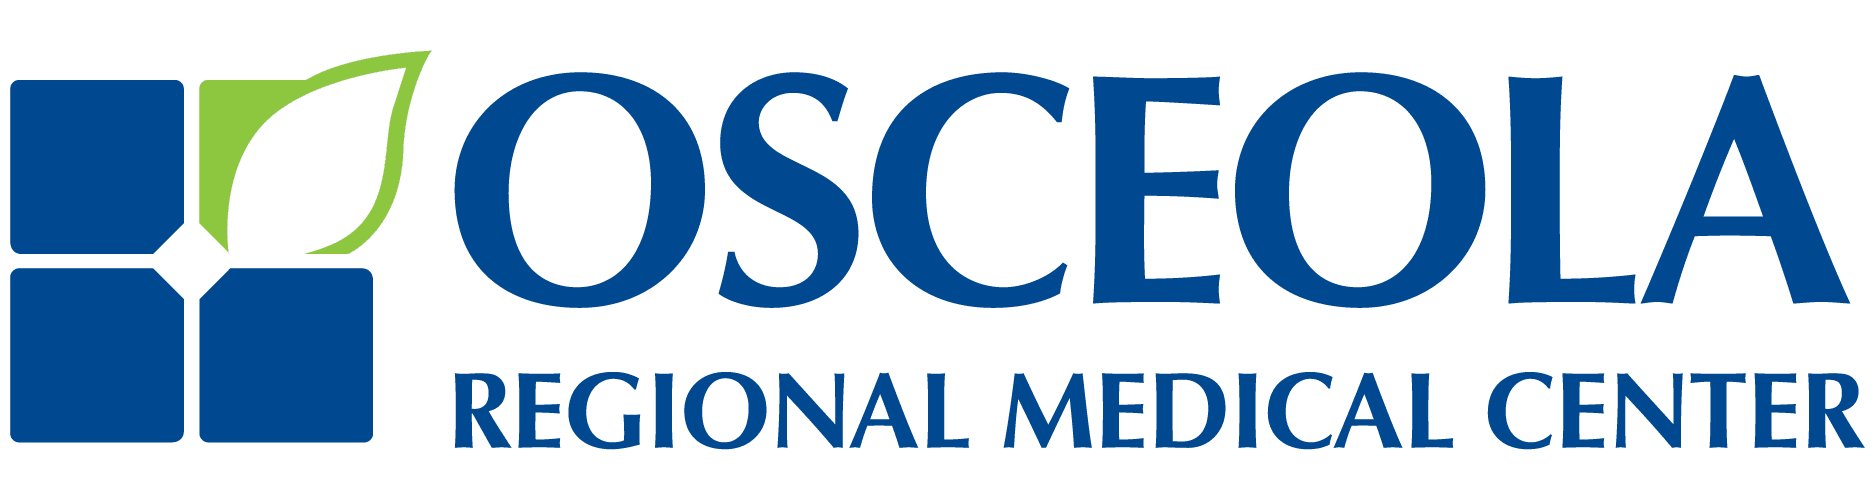 Osceola-Regional-Medical-Center_Color logo